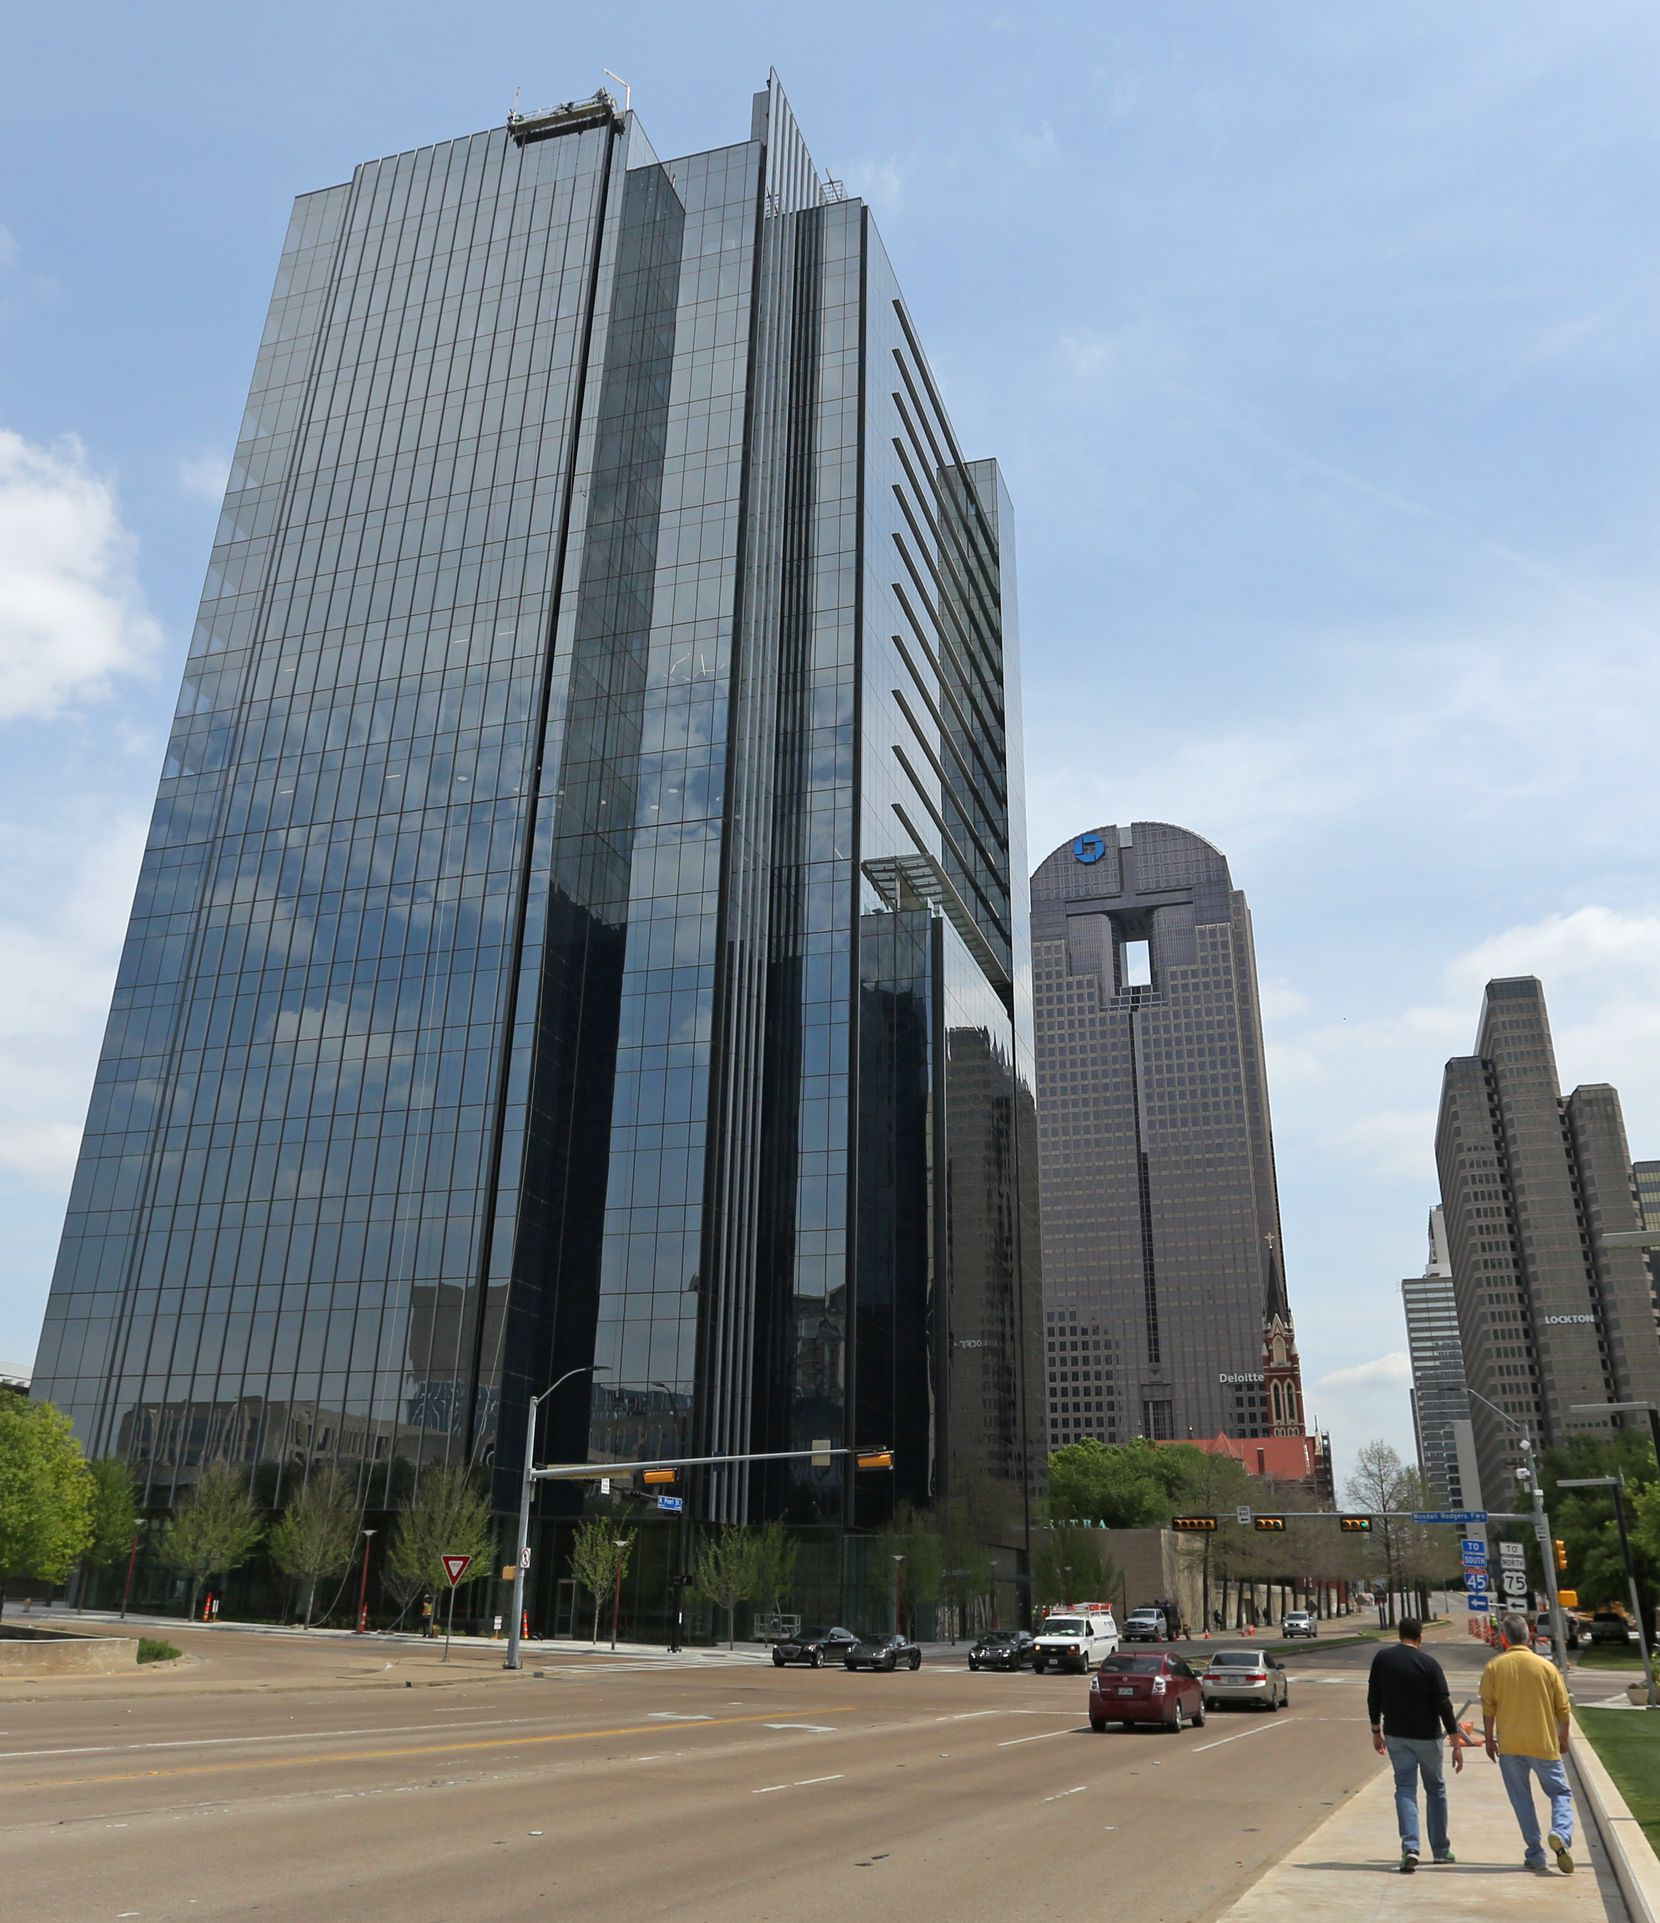 Steward Health Care has rented 67,000 square feet on the top of the 25-story 1900 Pearl building in downtown Dallas.